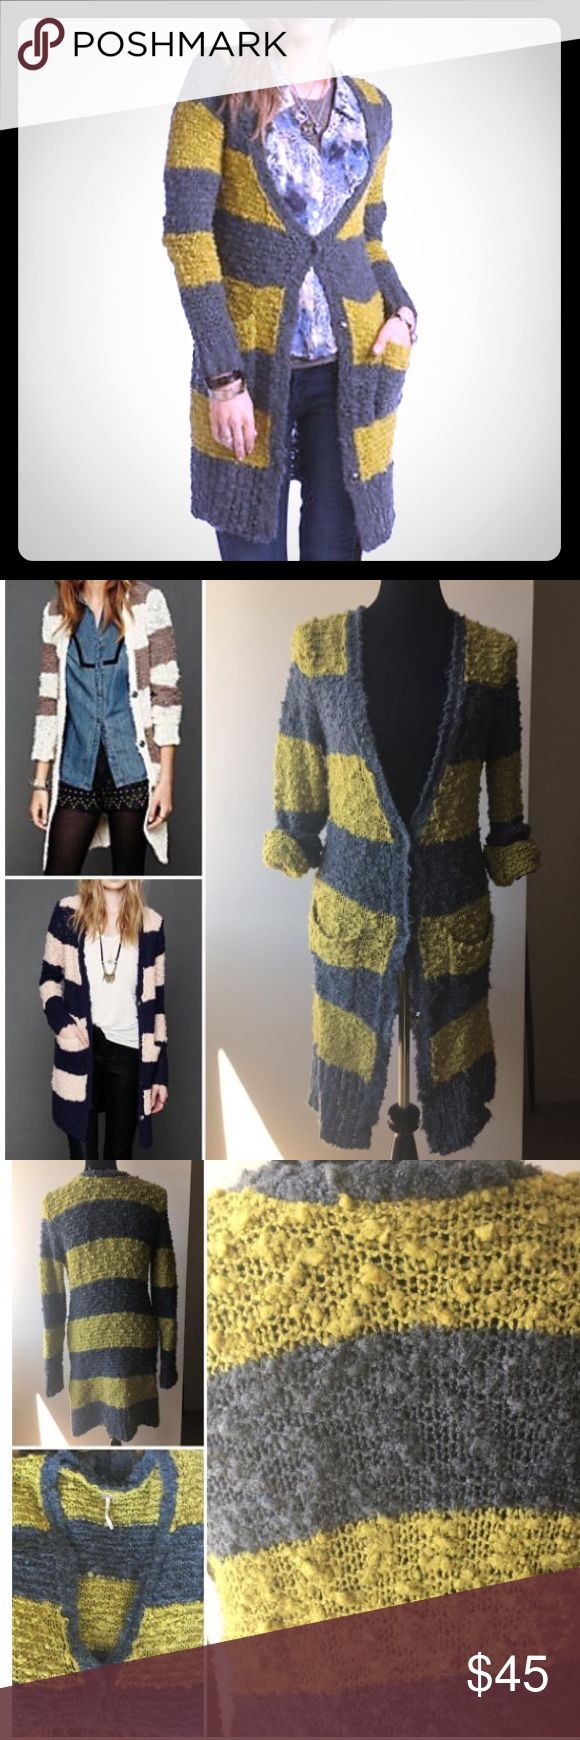 "Free People Rugby Stripe Lon Cardigan Nubby knit striped long cardigan with two front pockets. ""V""-neckline in front. Snap button closure. Super soft and comfy! Great condition!  65% Acrylic, 24% Wool, 5% Nylon, 1% Spandex Machine Wash Cold Size Medium. /gray/yellow-green color Free People Sweaters Cardigans"